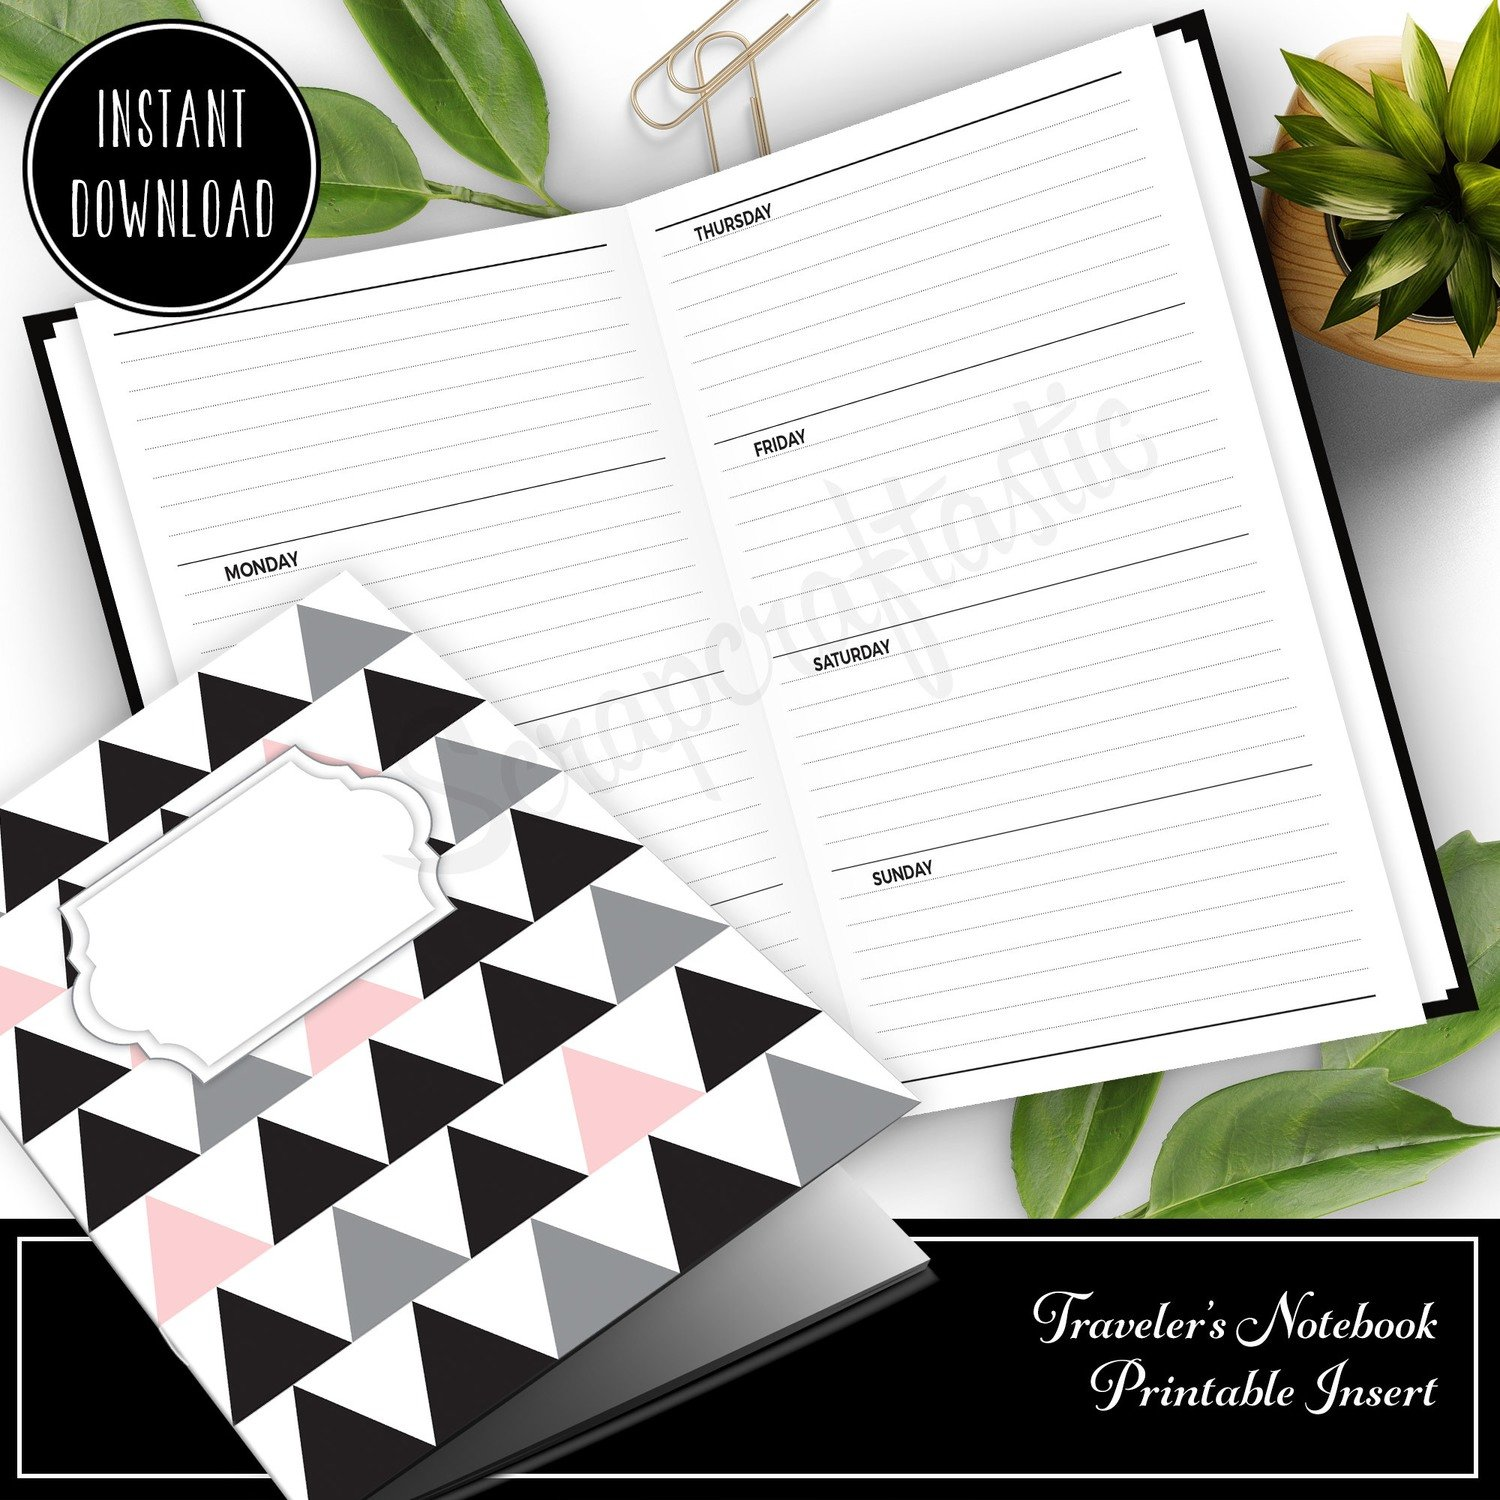 PERSONAL TN - Horizontal Lined Undated Weekly Traveler's Notebook Printable Planner Insert